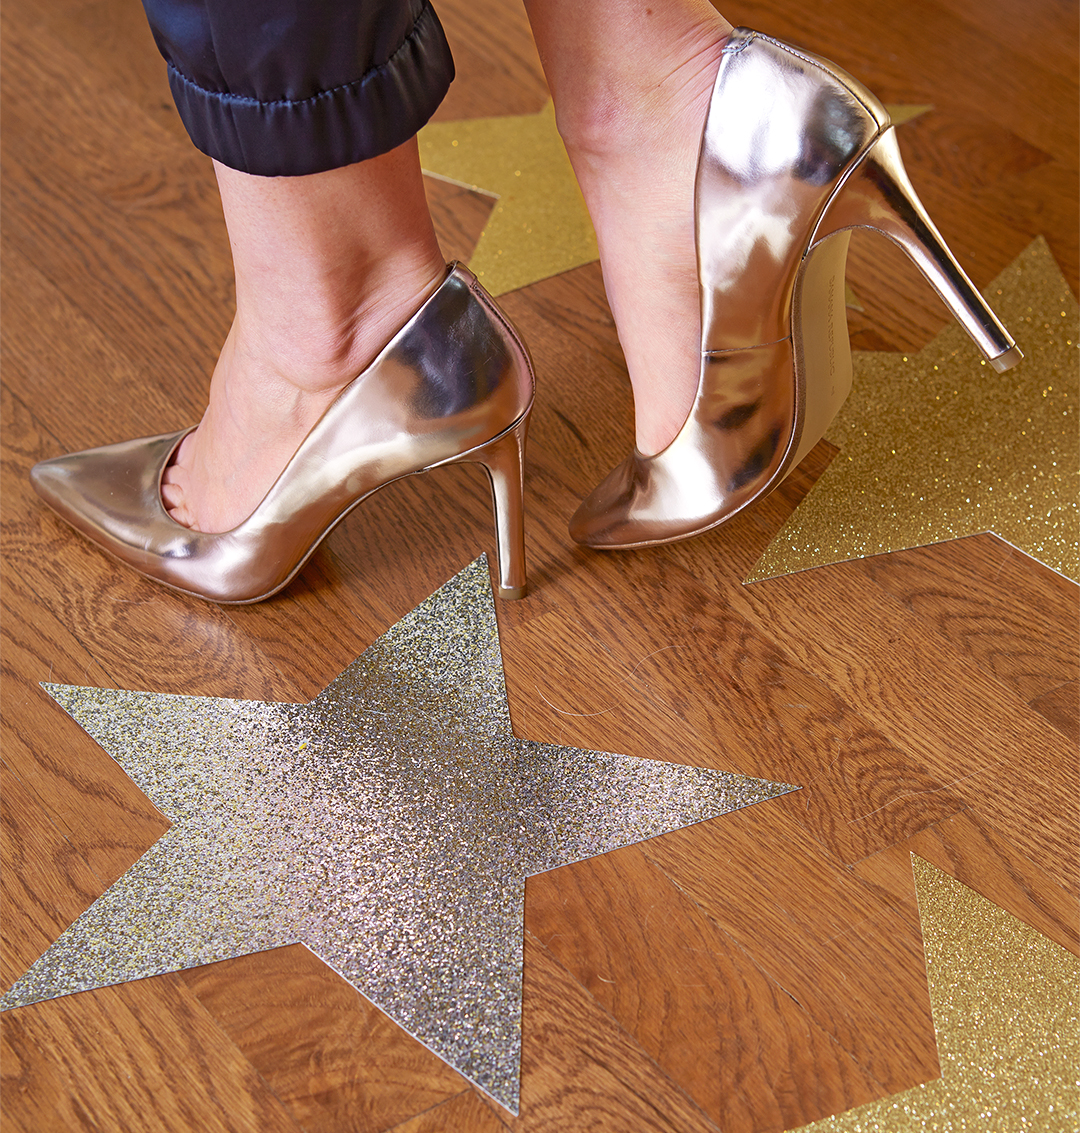 walk way of metallic stars on floor with woman in shiny high heels